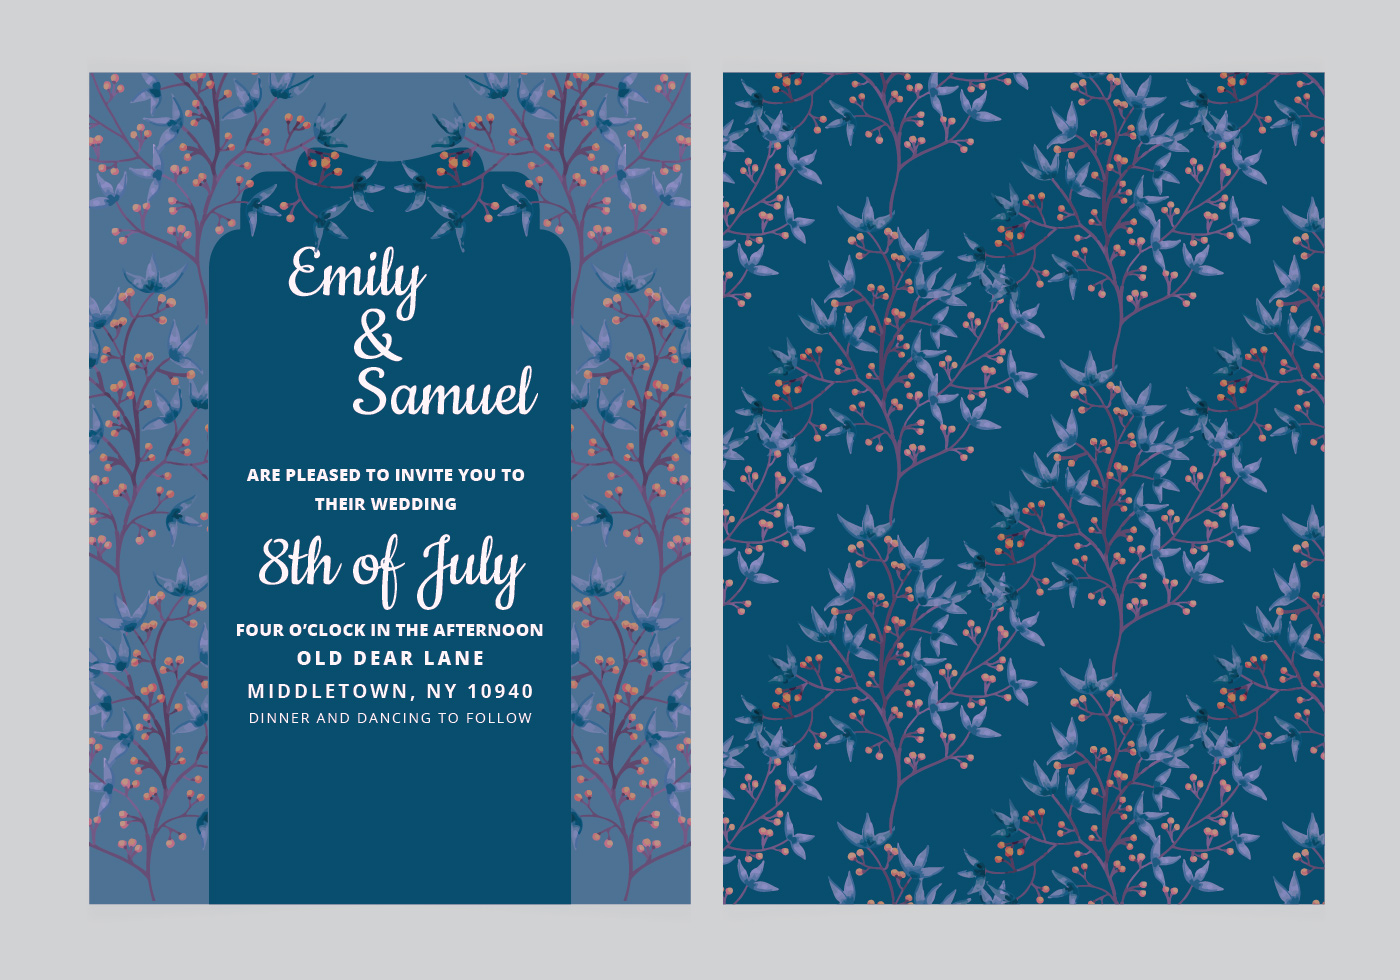 Dark Blue Wedding Invitations: Dark Blue Wedding Invite Free Vector Art